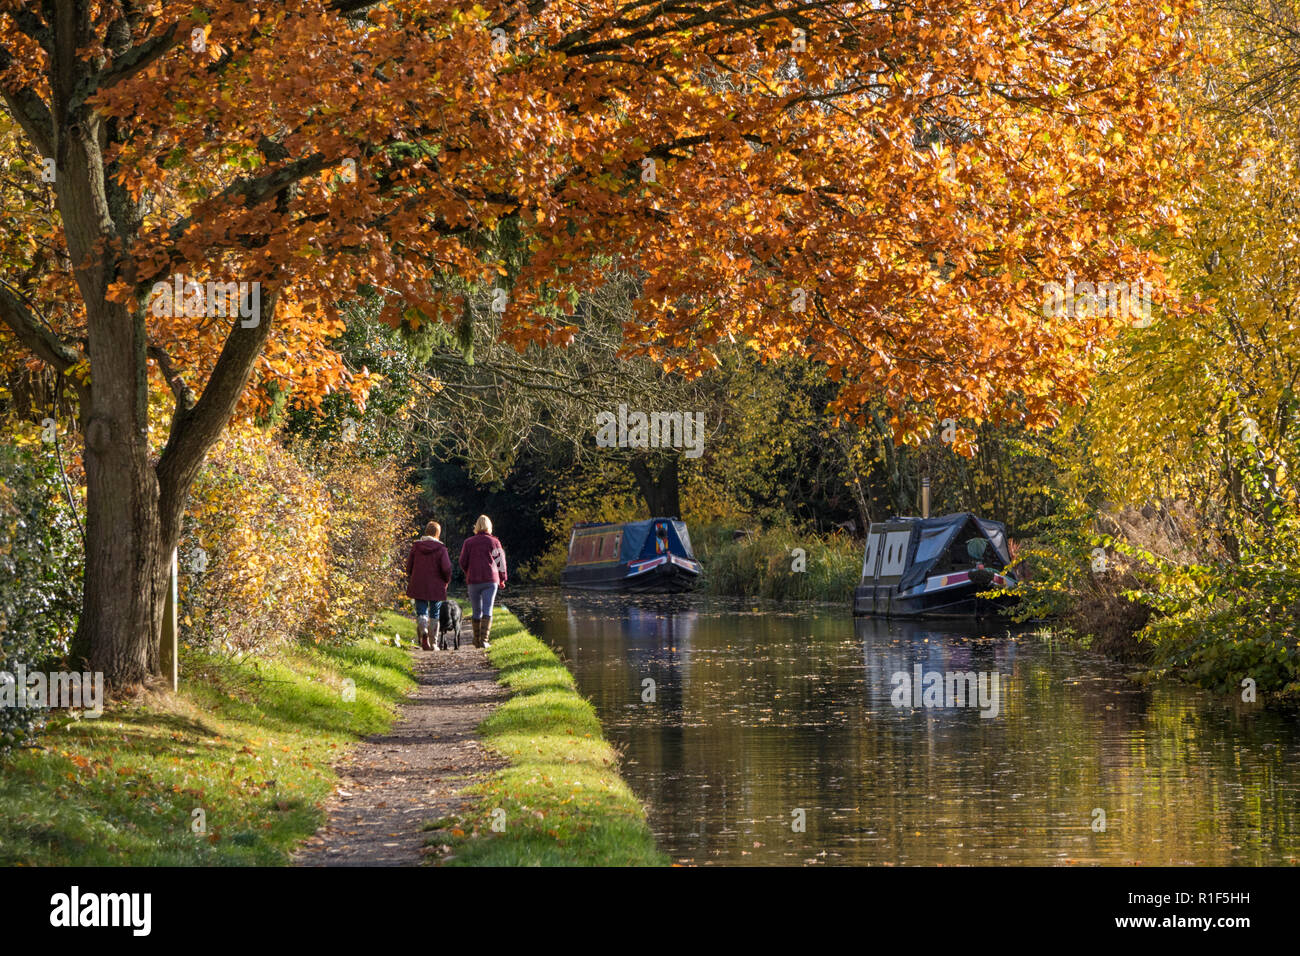 Autumn on the Stratford upon Avon Canal between Hockly Heath and Lapworth, Warwickshire, England, UK - Stock Image